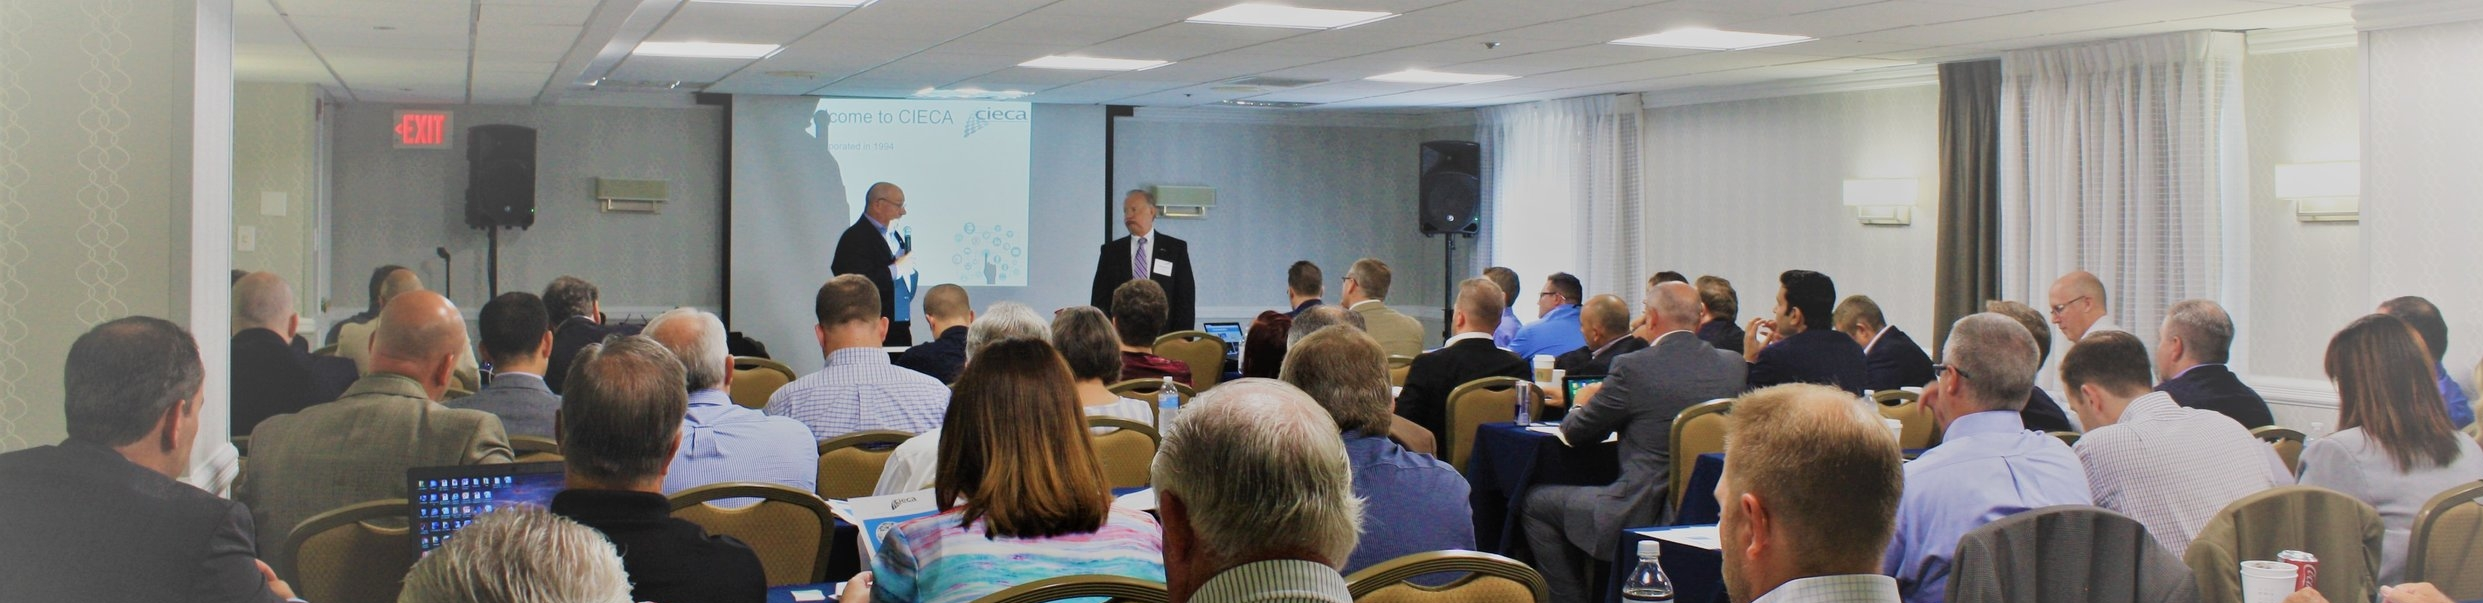 CIECA representatives Charley Quirt and Fred Iantorno present information about data standards to PIRC in July 2018, Chicago, Ill.